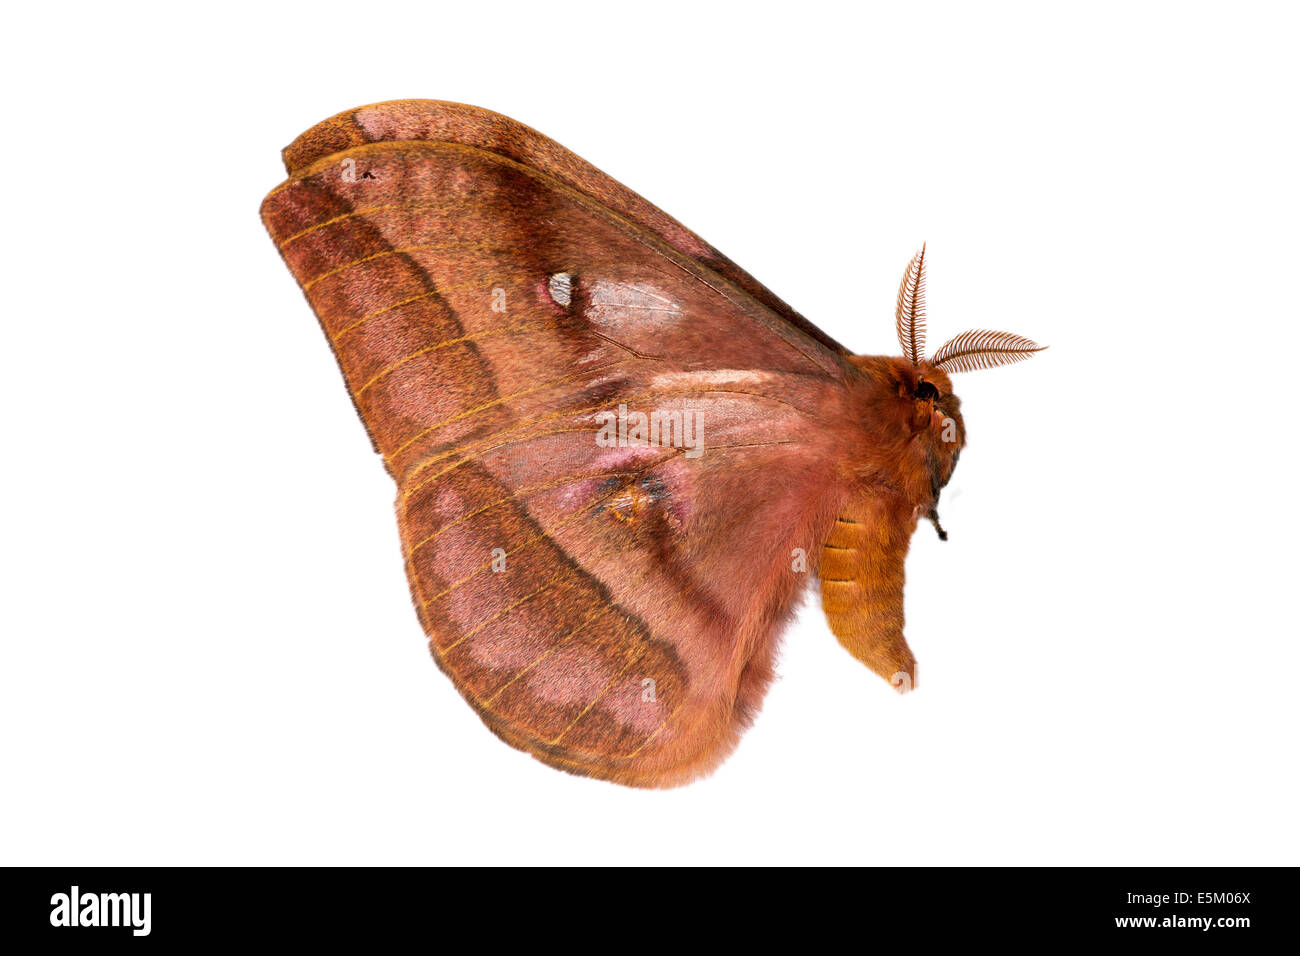 Undefined moth (Nudaurelia), native to Ethiopia - Stock Image